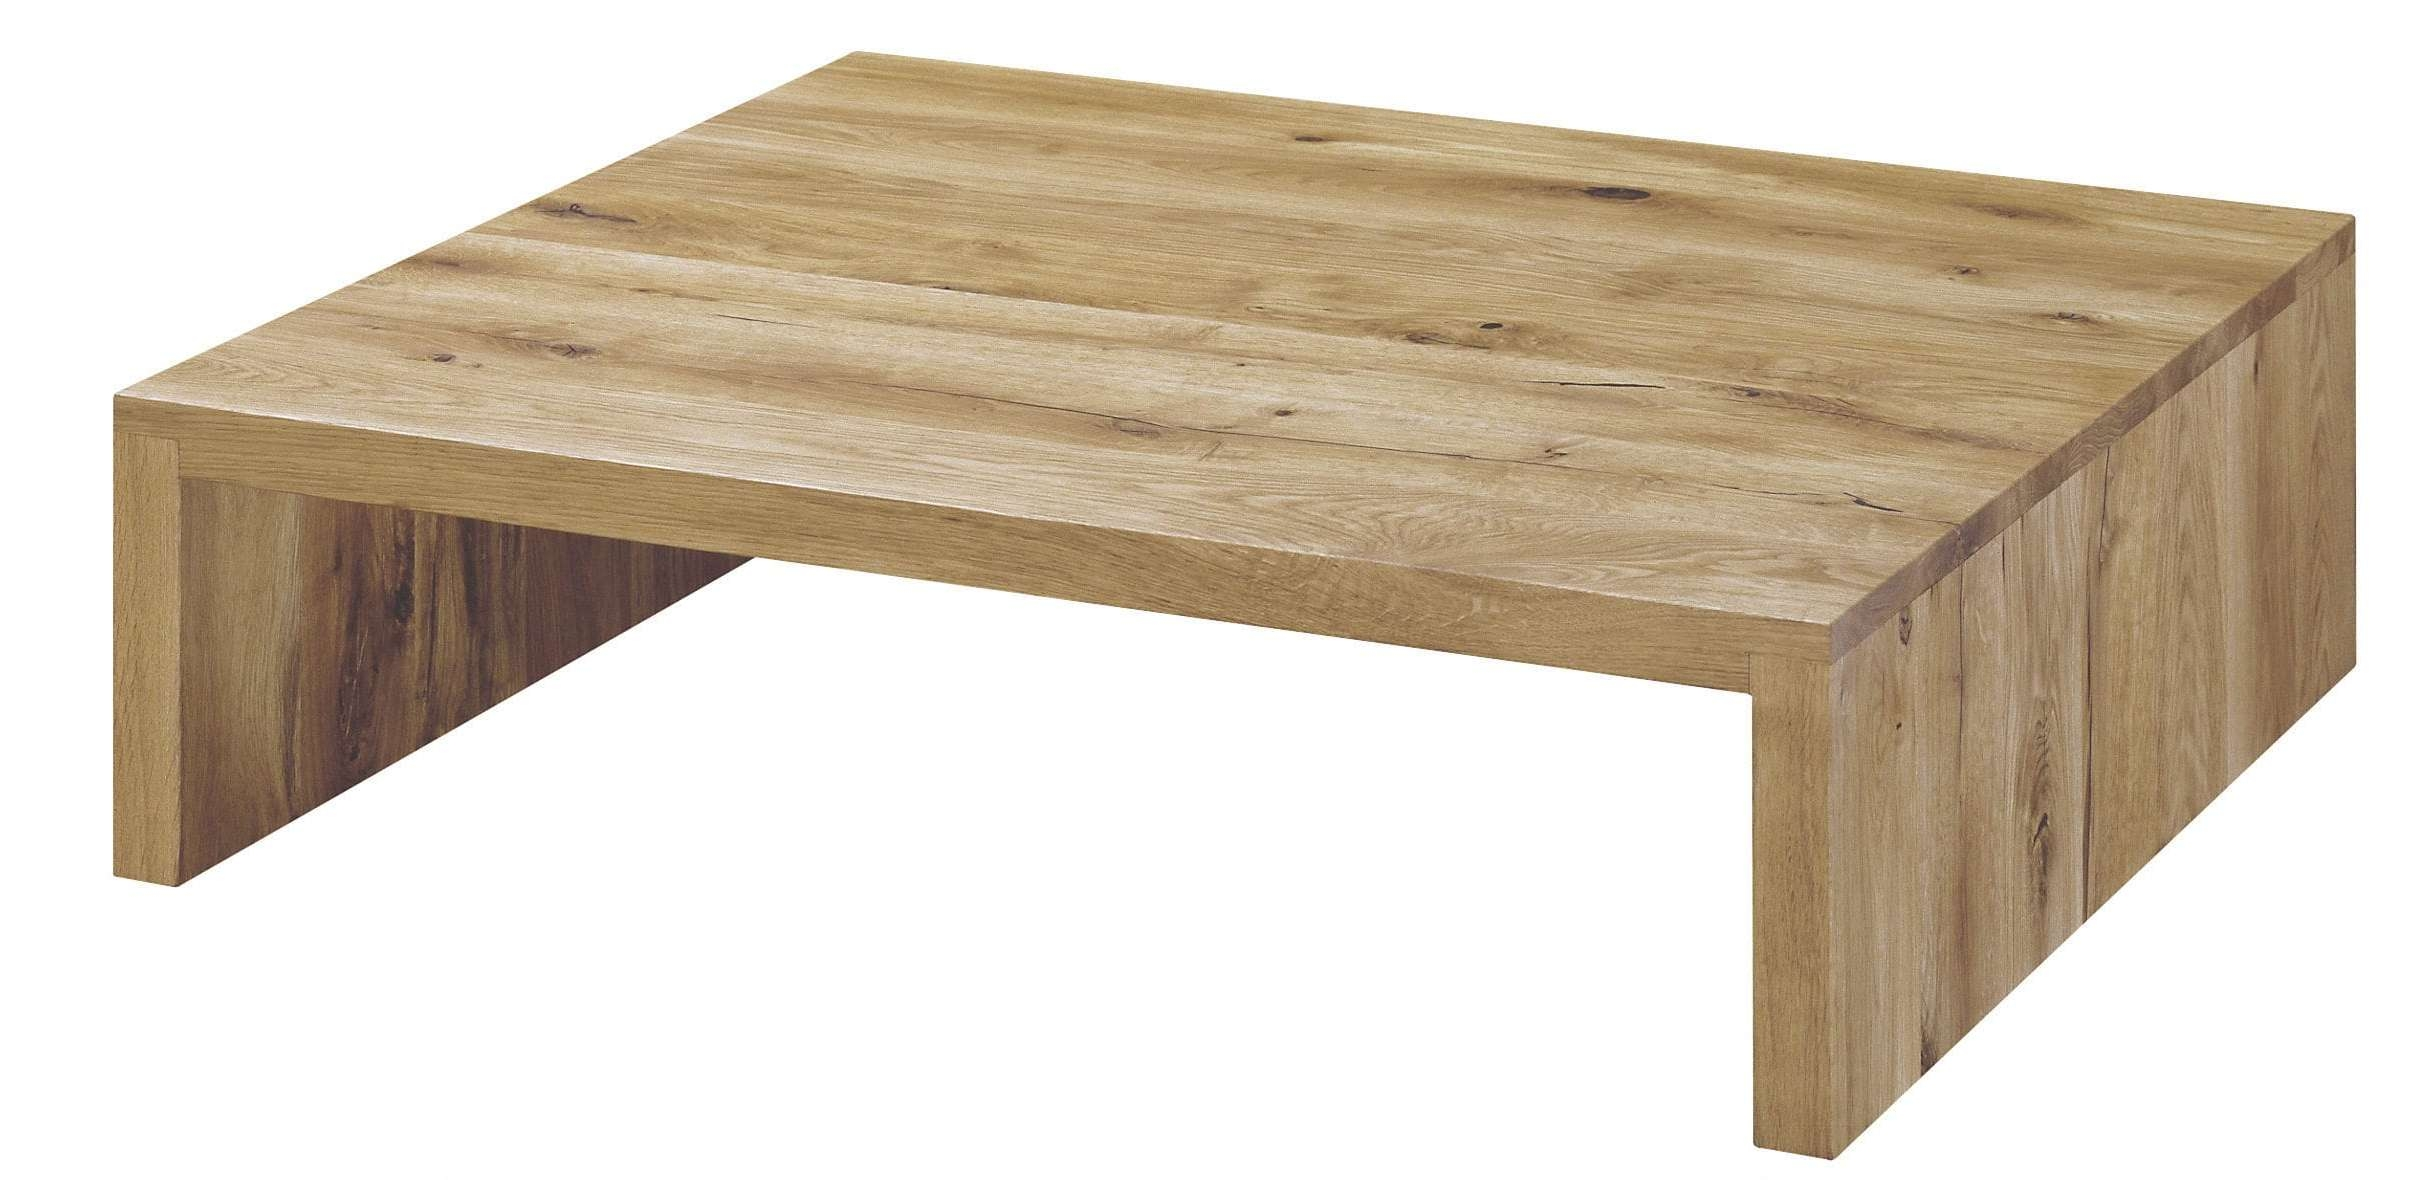 Coffee Table : Fabulous Coffee Table / Rectangular / Contemporary Within Newest White And Oak Coffee Tables (View 4 of 20)